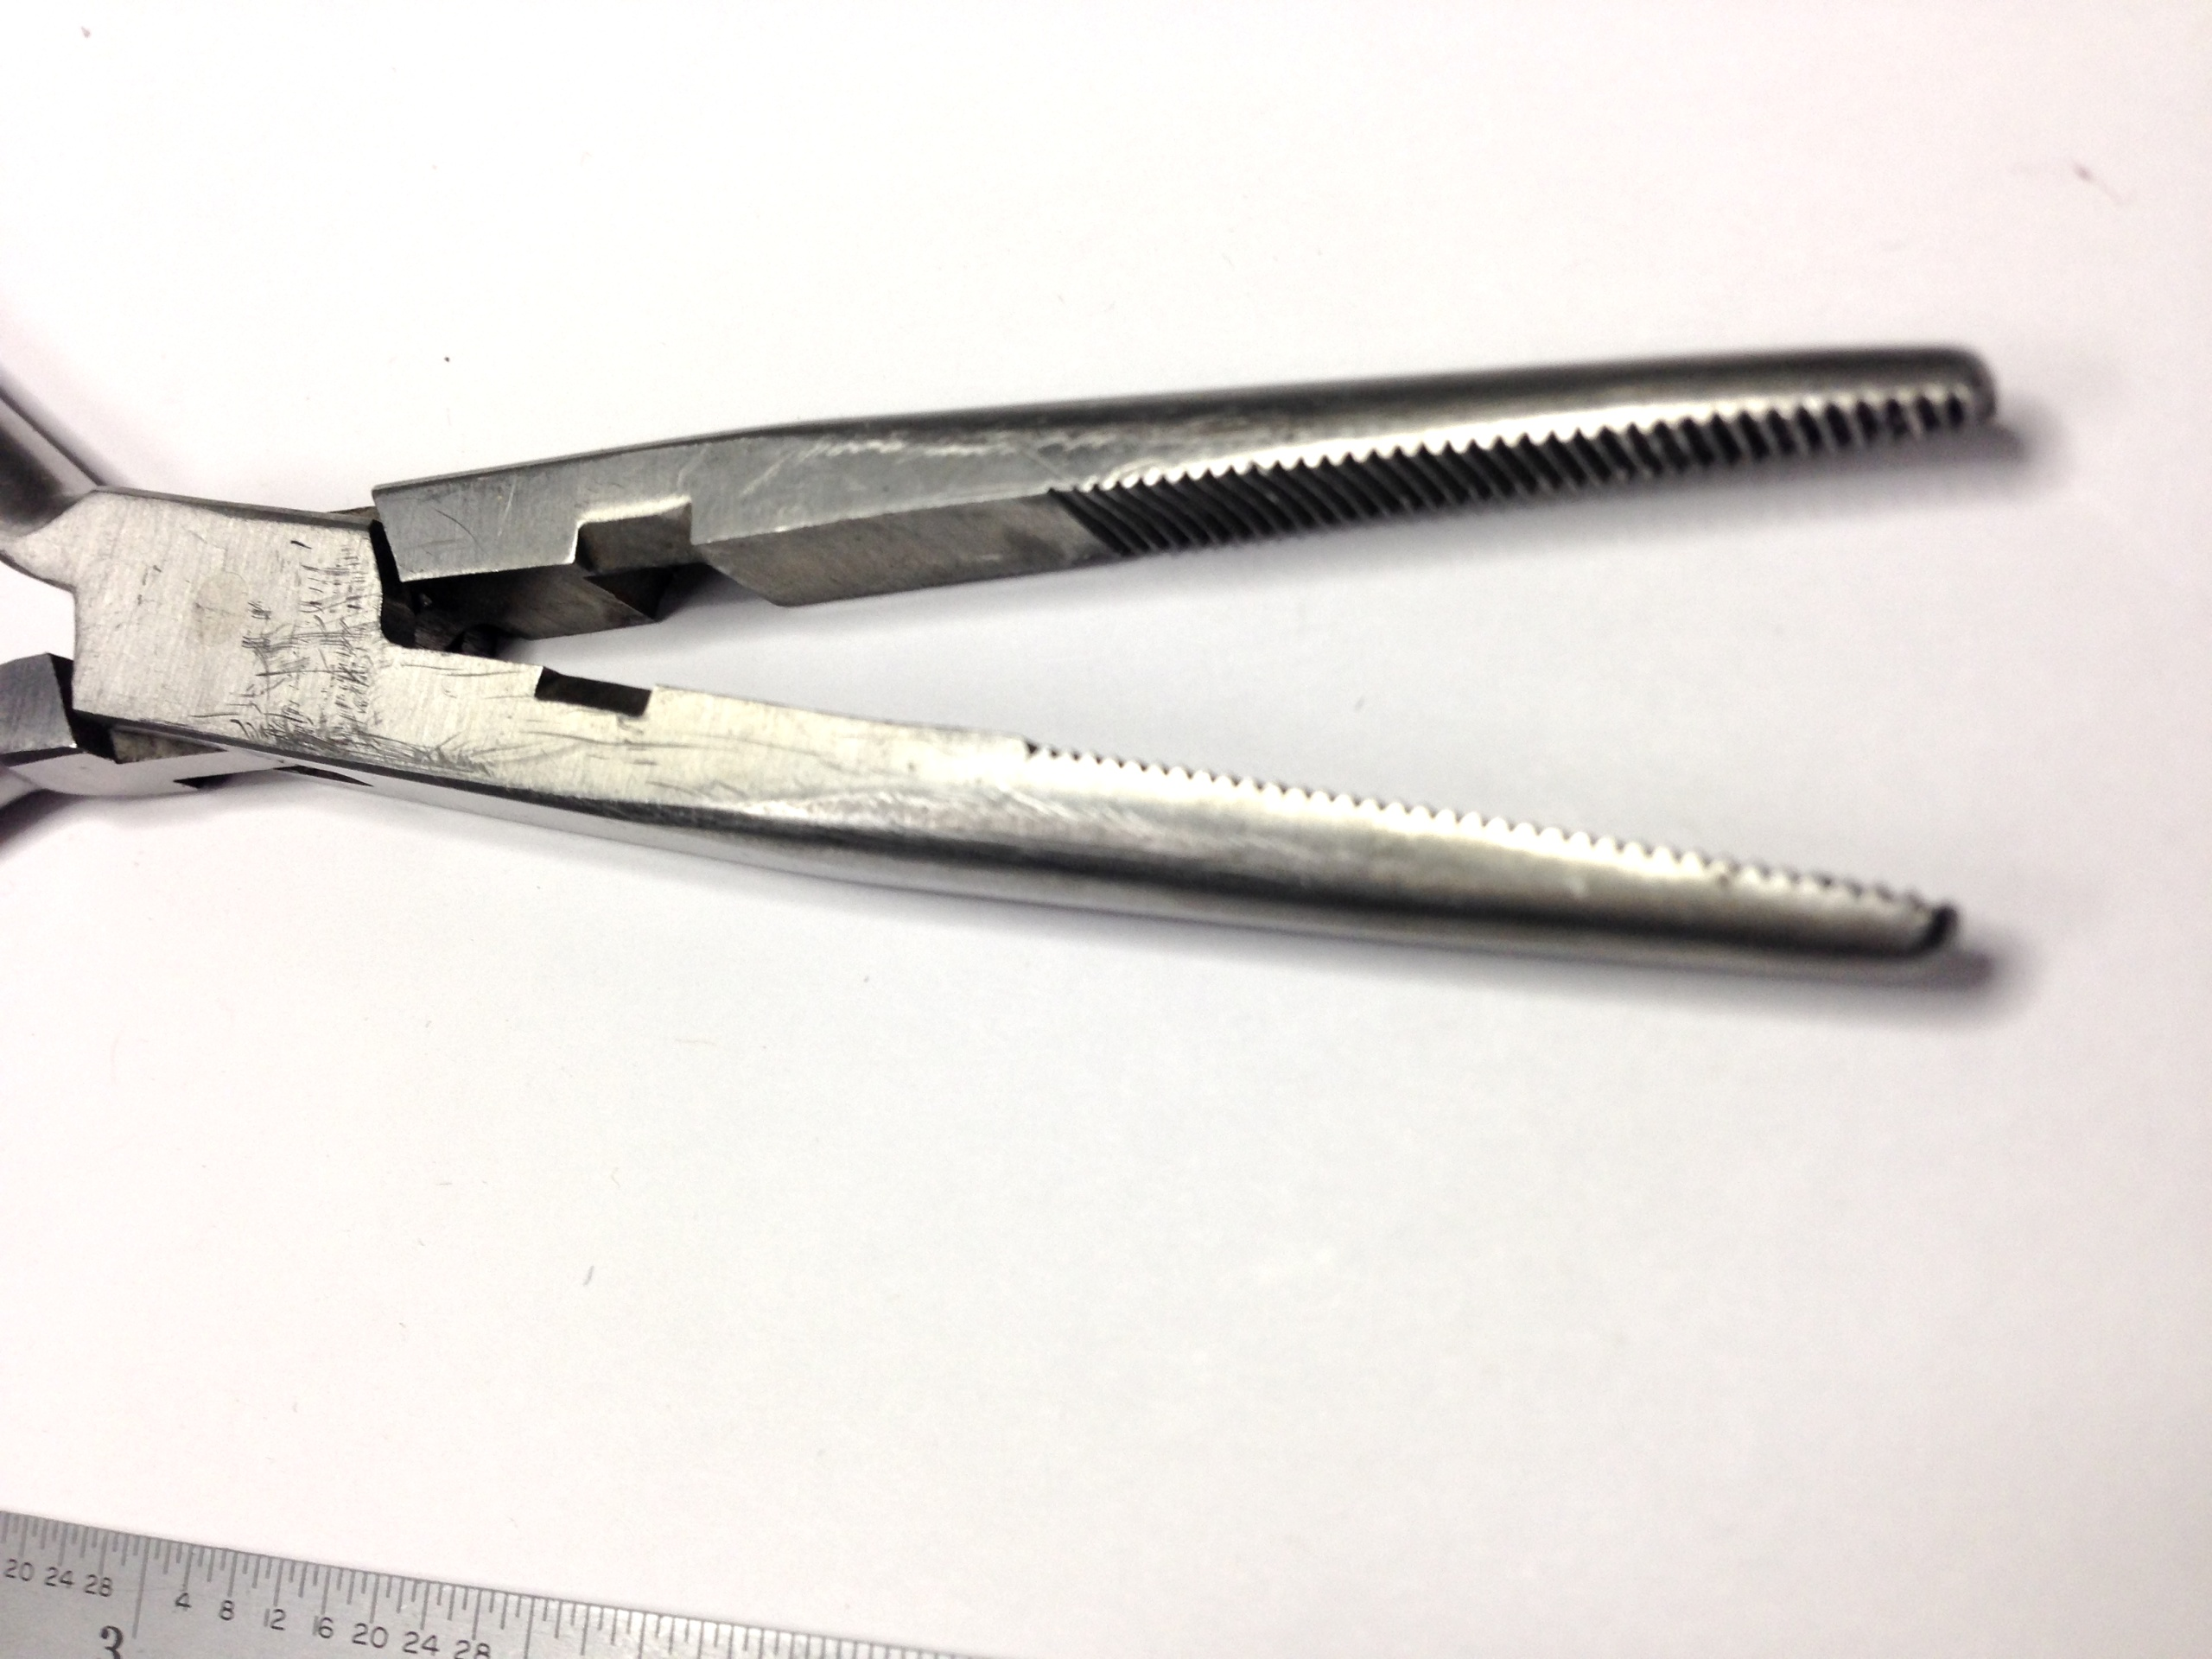 Click image for larger version.  Name:Surgical Pliers-2.jpg Views:8 Size:887.8 KB ID:57124